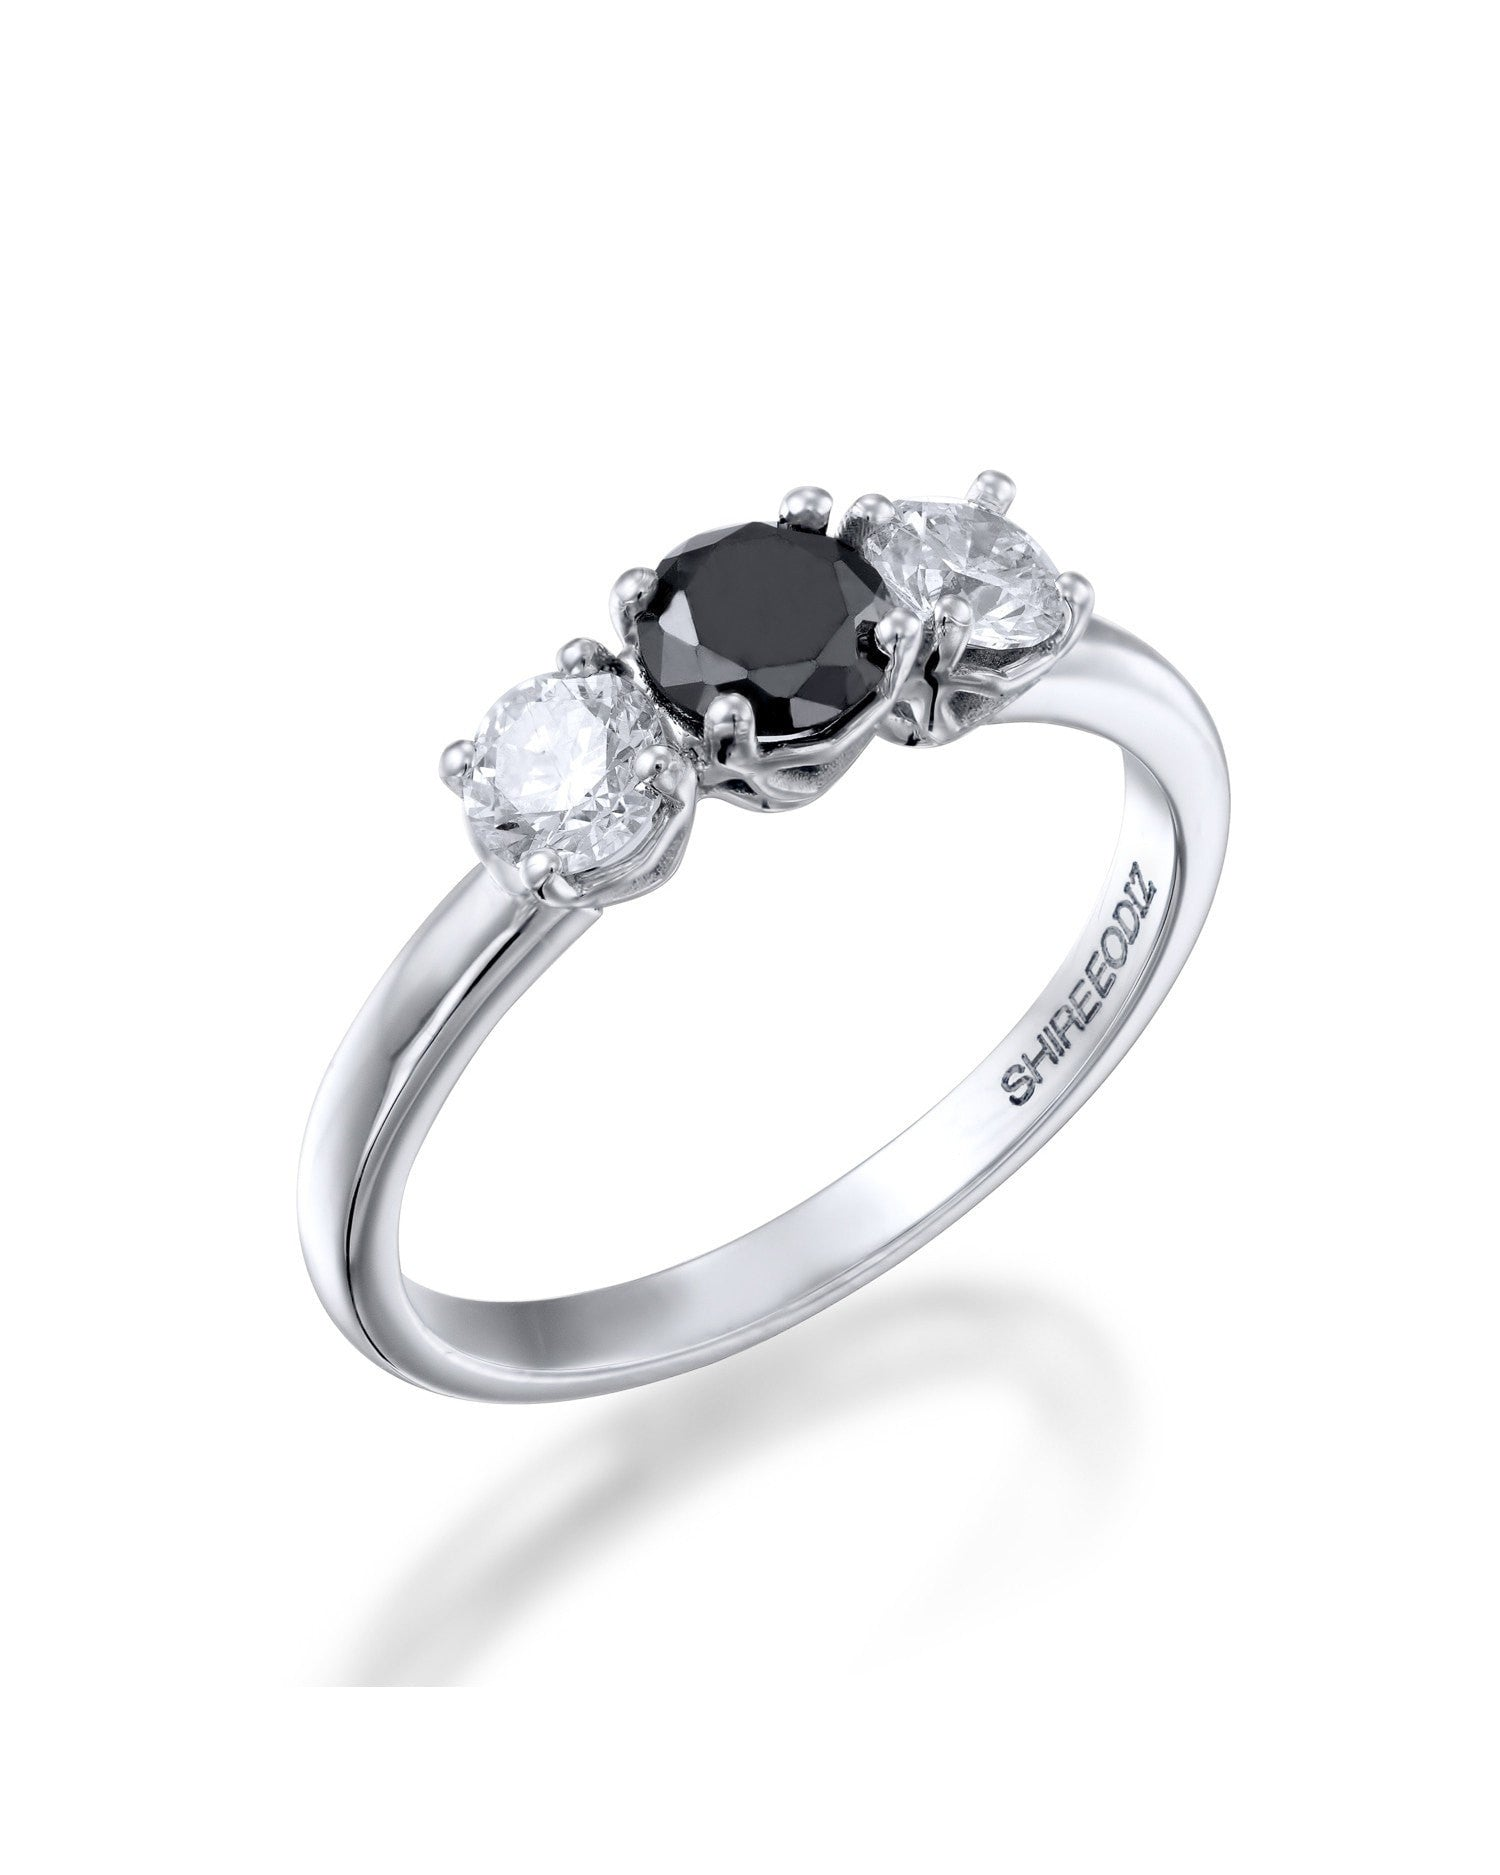 1 00ctw black diamond trilogy 3 stone engagement ring – shiree odiz